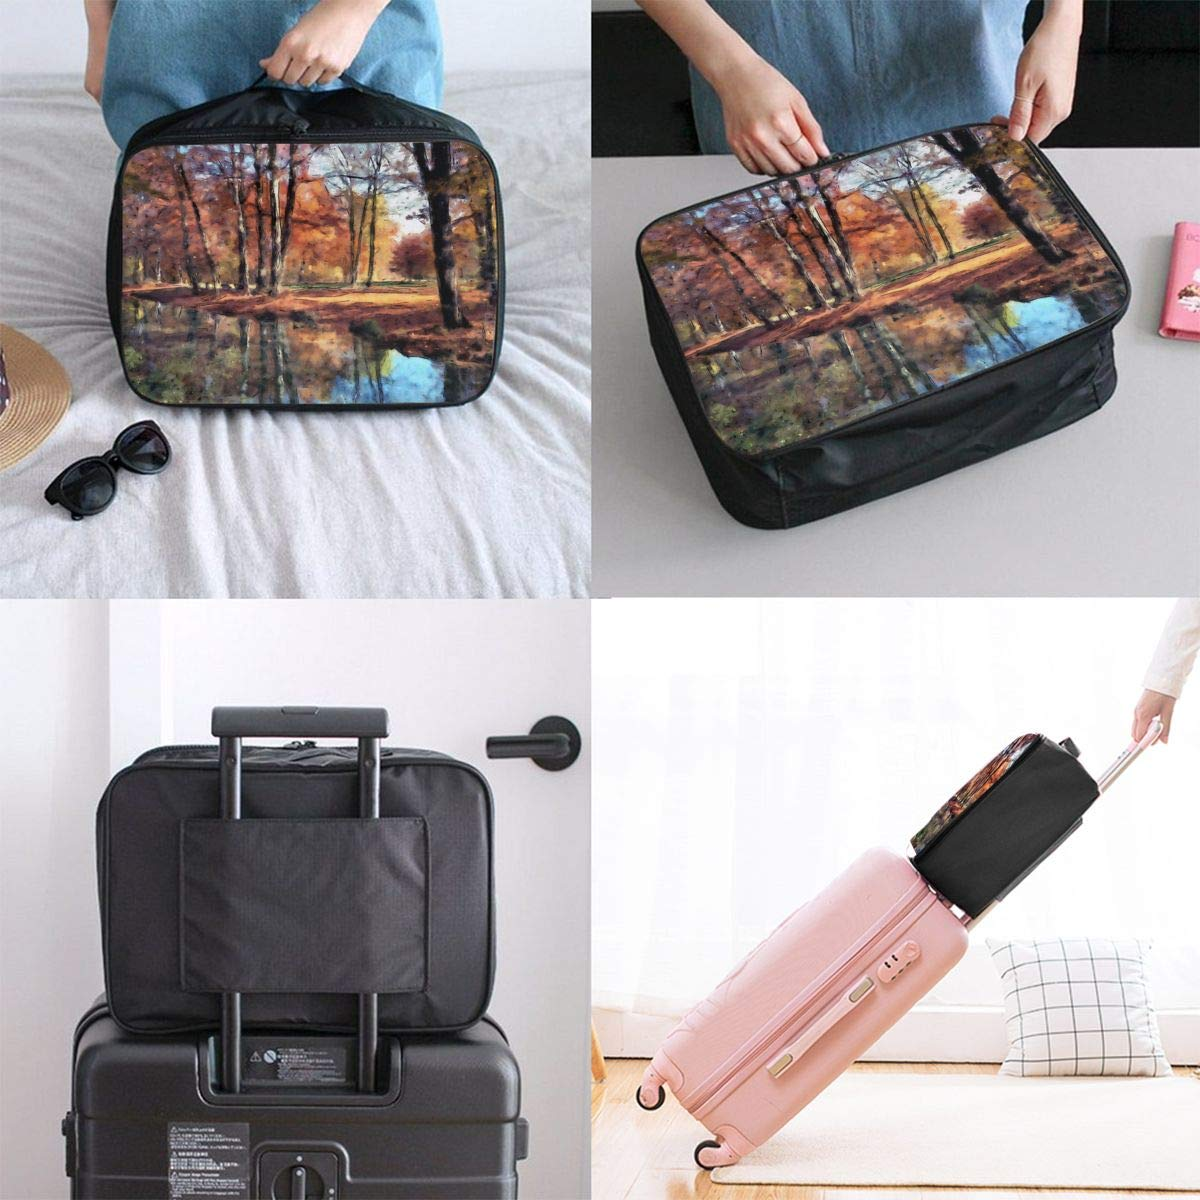 Autumn Bavaria Park Natural Tree Travel Lightweight Waterproof Foldable Storage Carry Luggage Large Capacity Portable Luggage Bag Duffel Bag